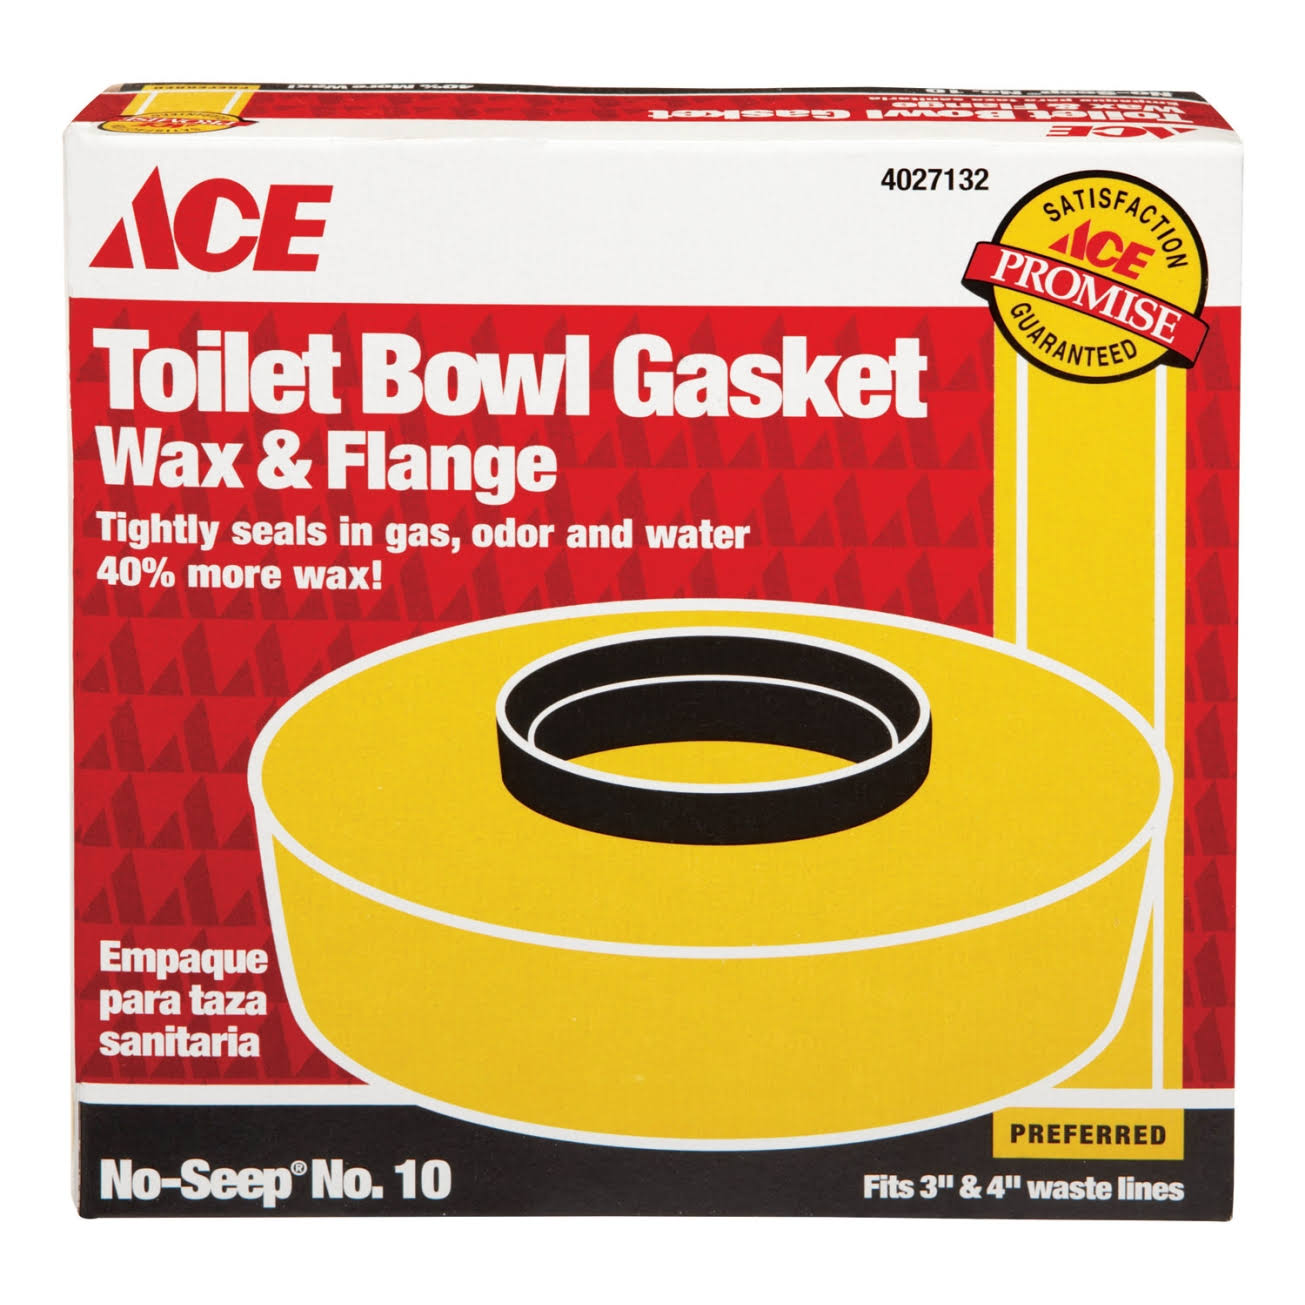 Ace Toilet Bowl Gasket with Wax & Flange